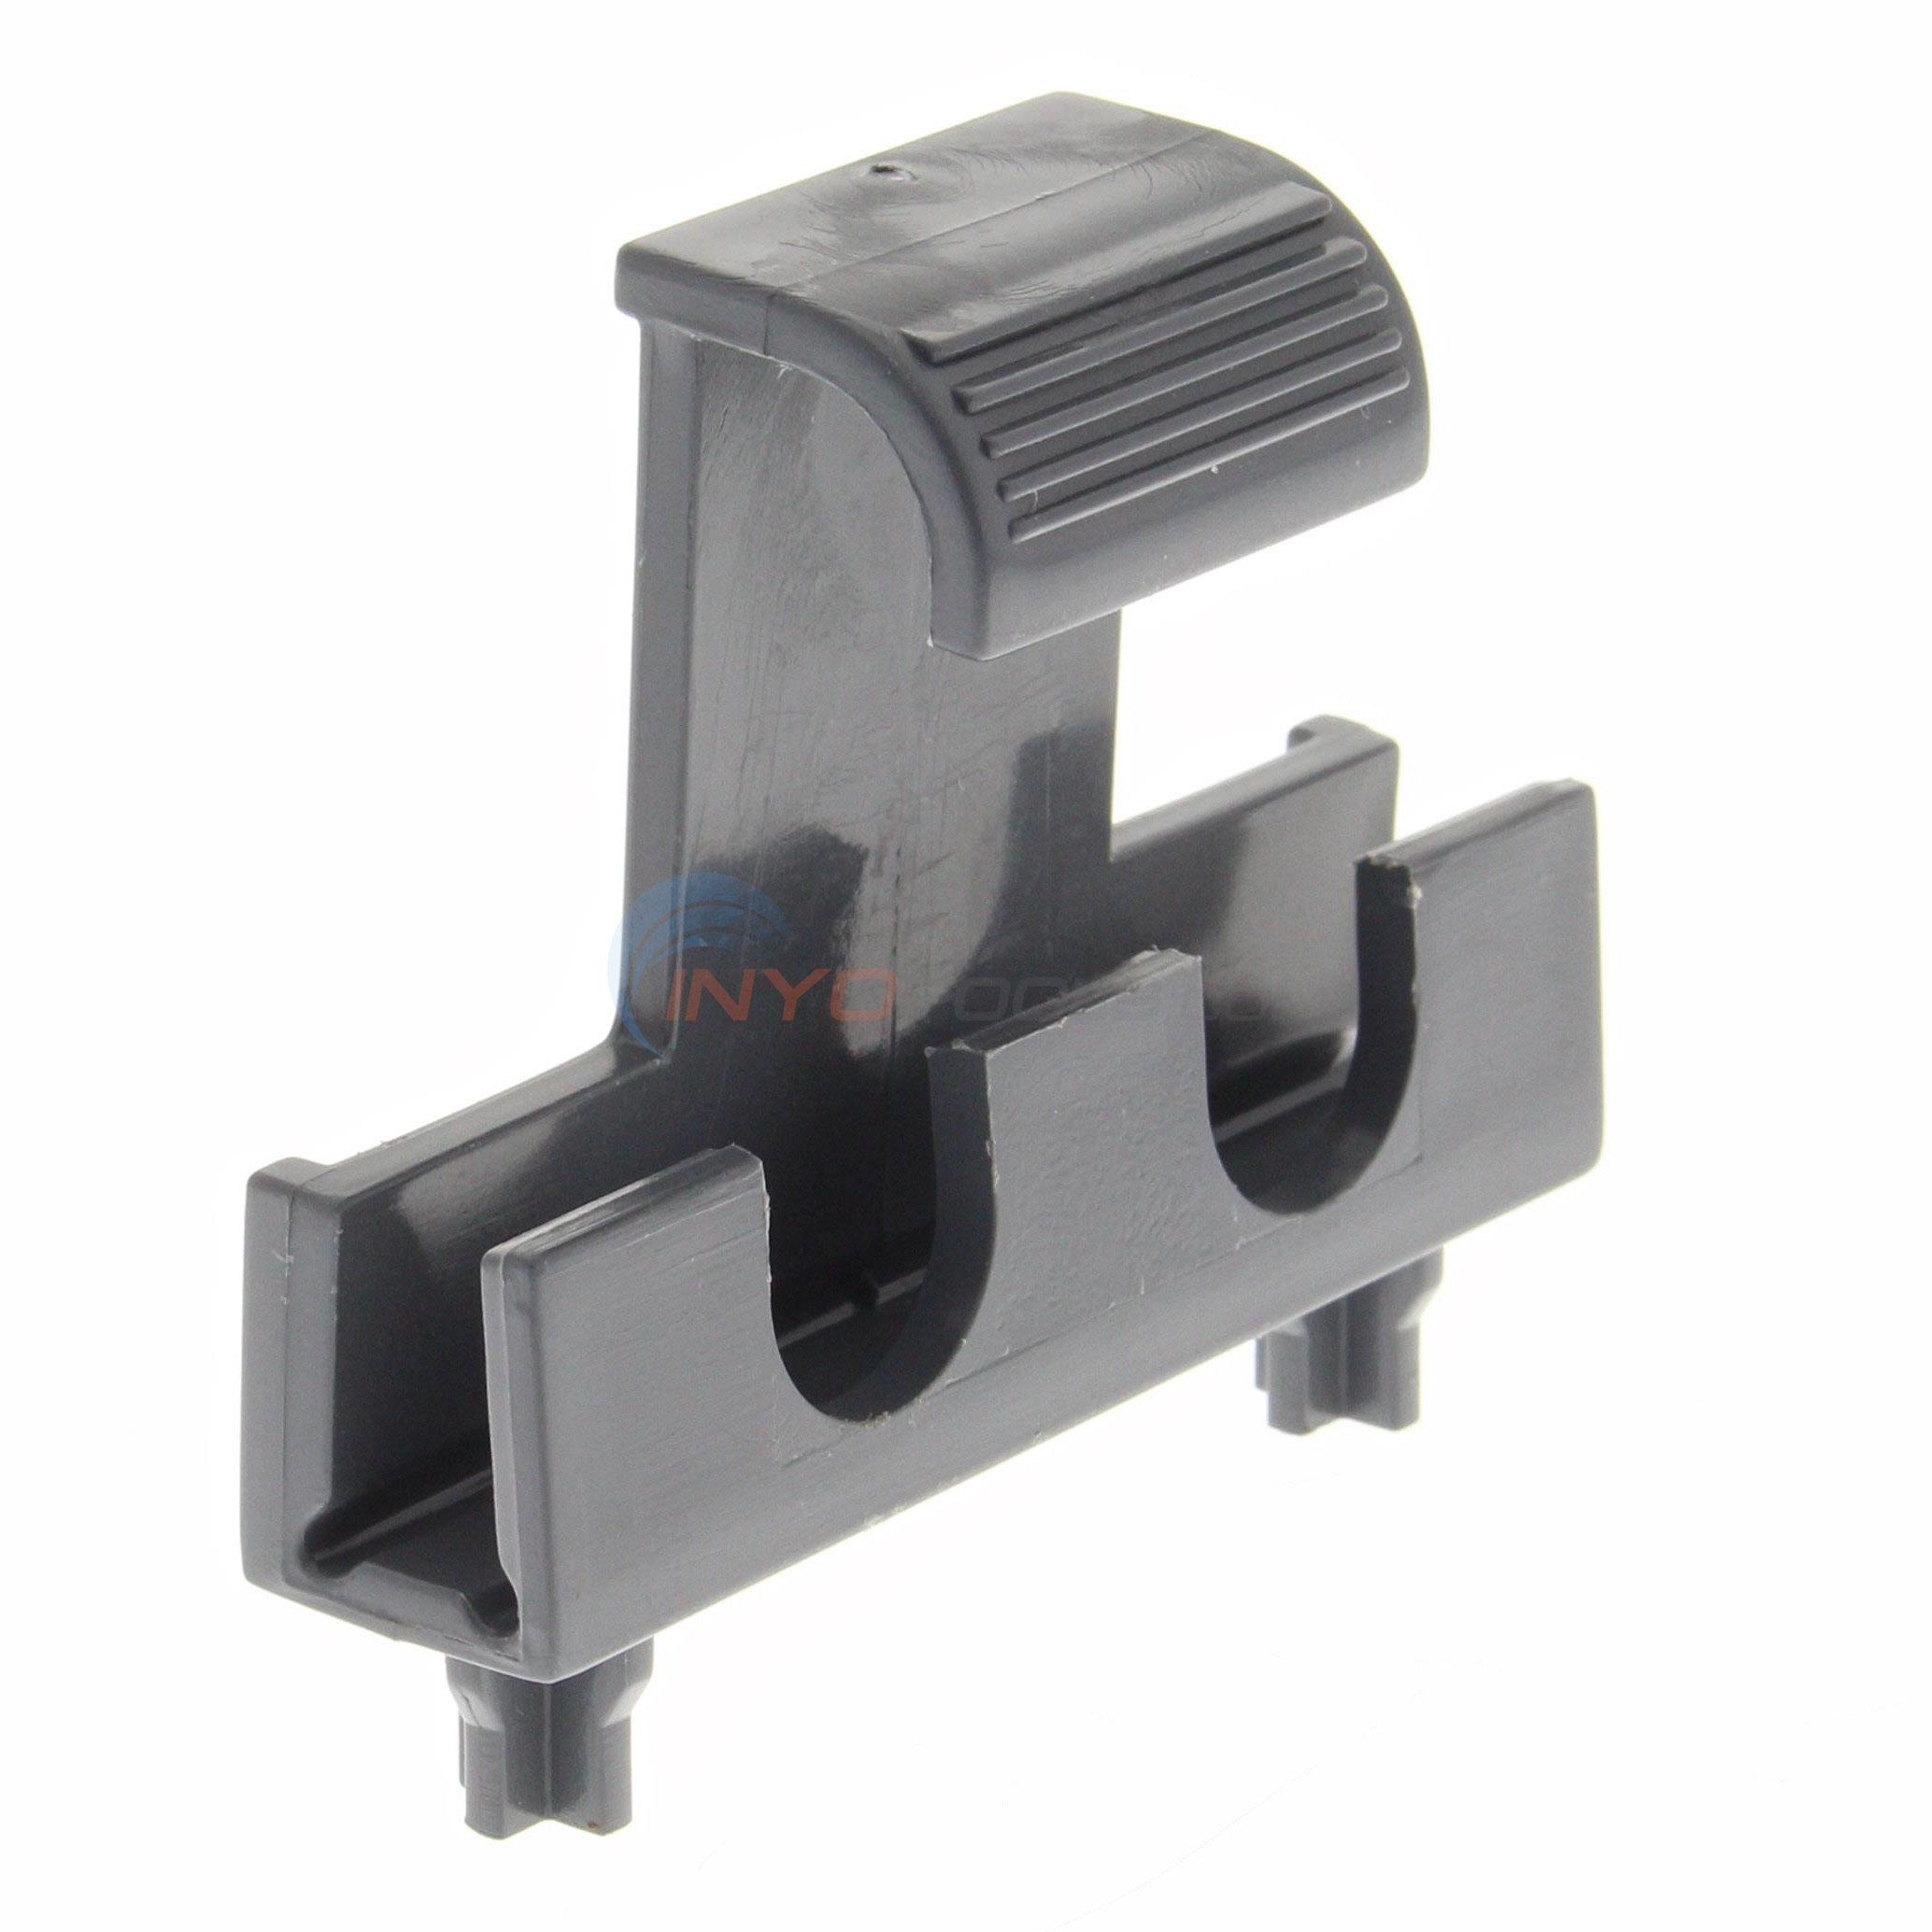 Maytronics Handle Latch-dark Grey - 3295-302